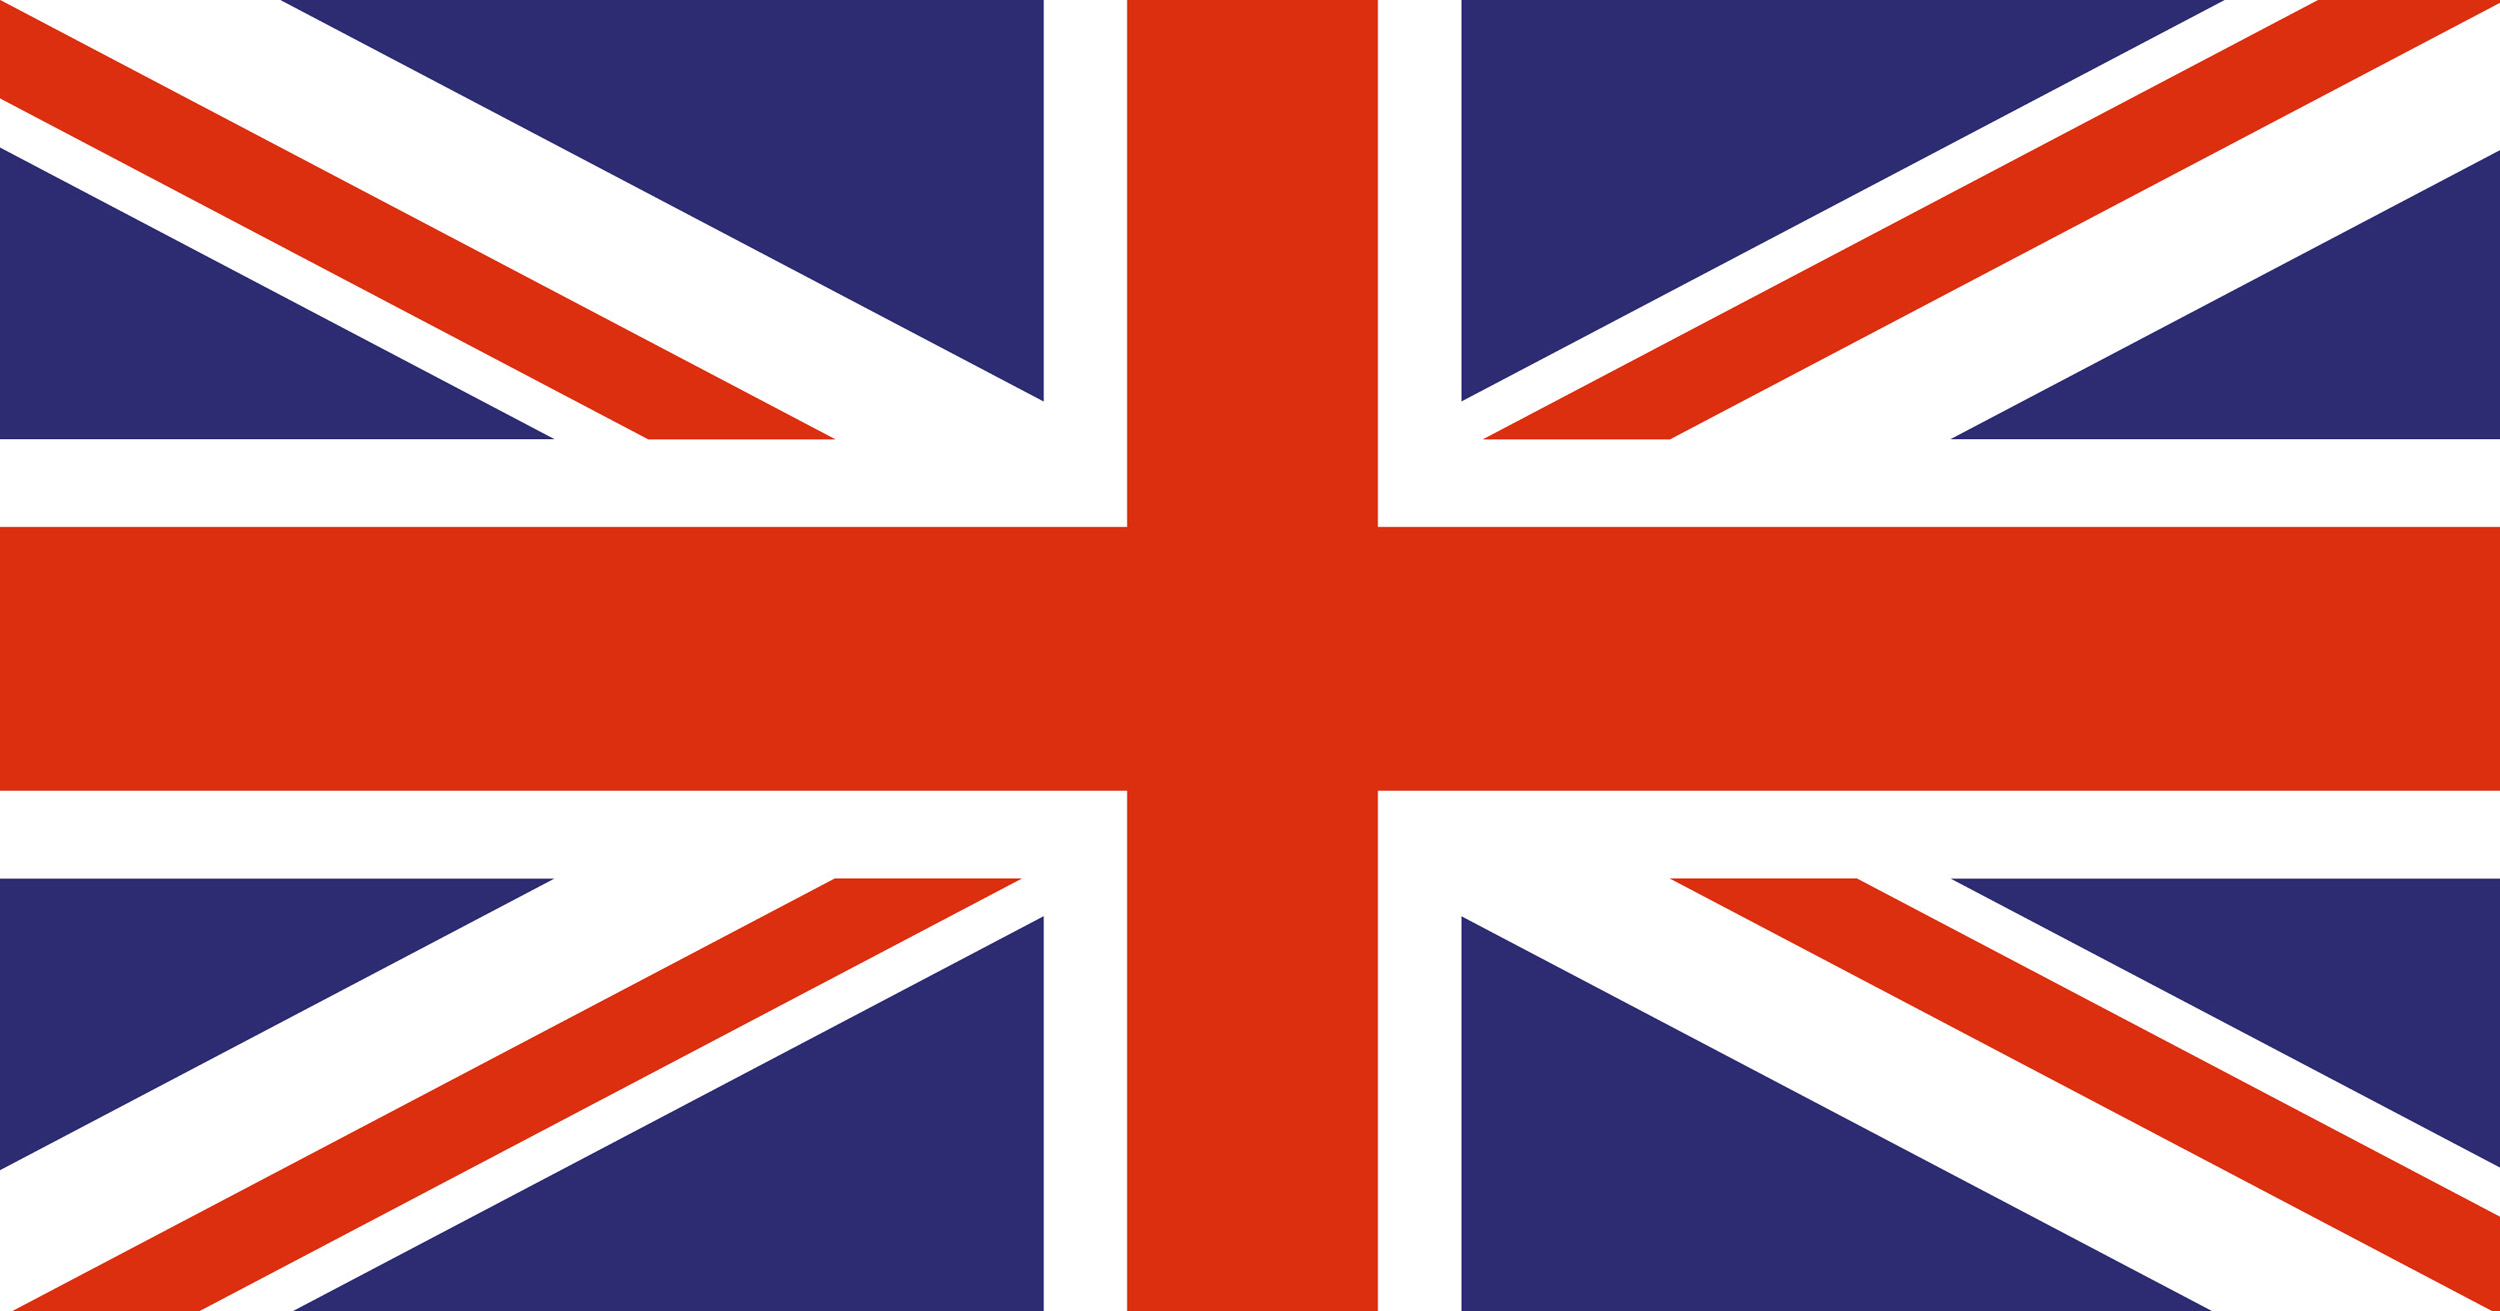 uk union flag desktop wallpaper